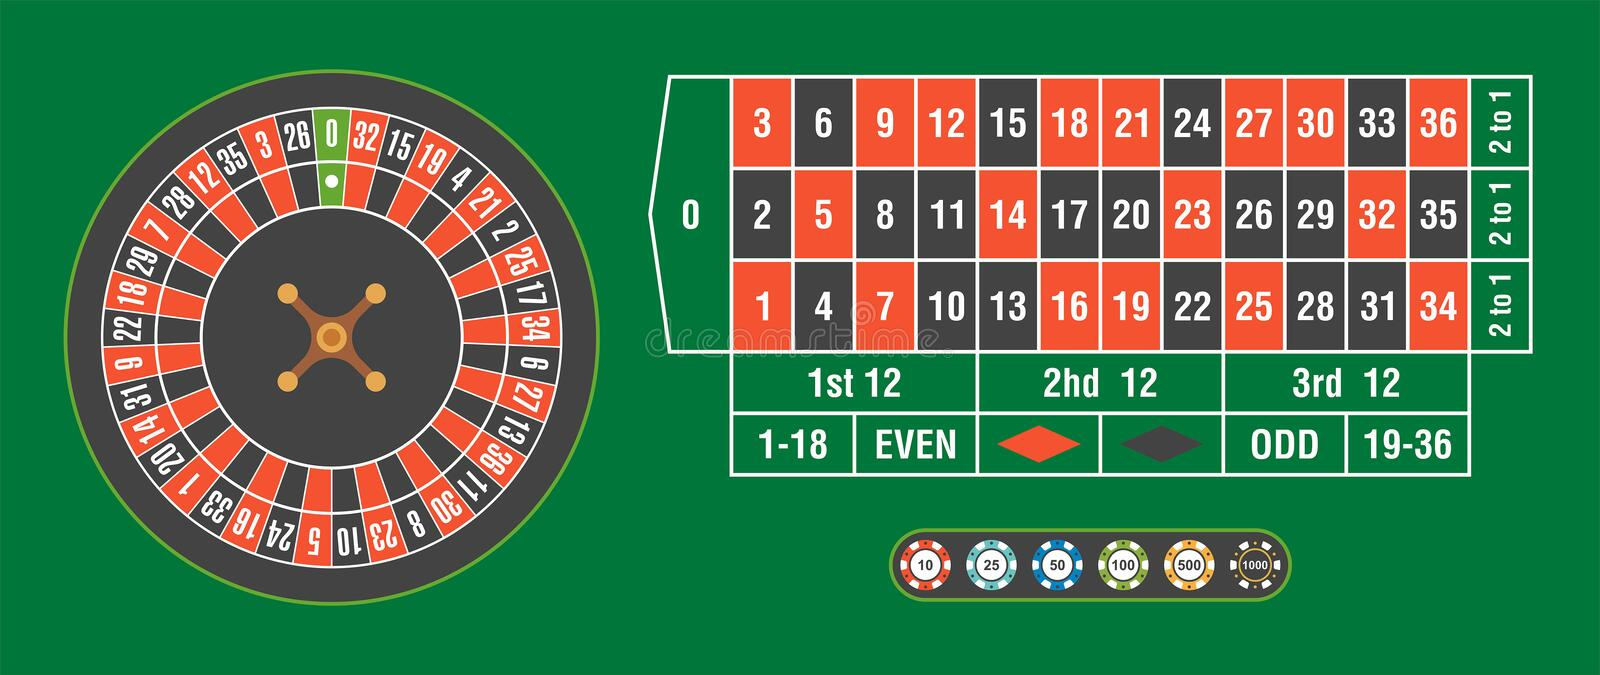 Casino roulette wheel with casino chips on green table. Casino roulette wheel with casino chips isolated on green casino table vector illustration